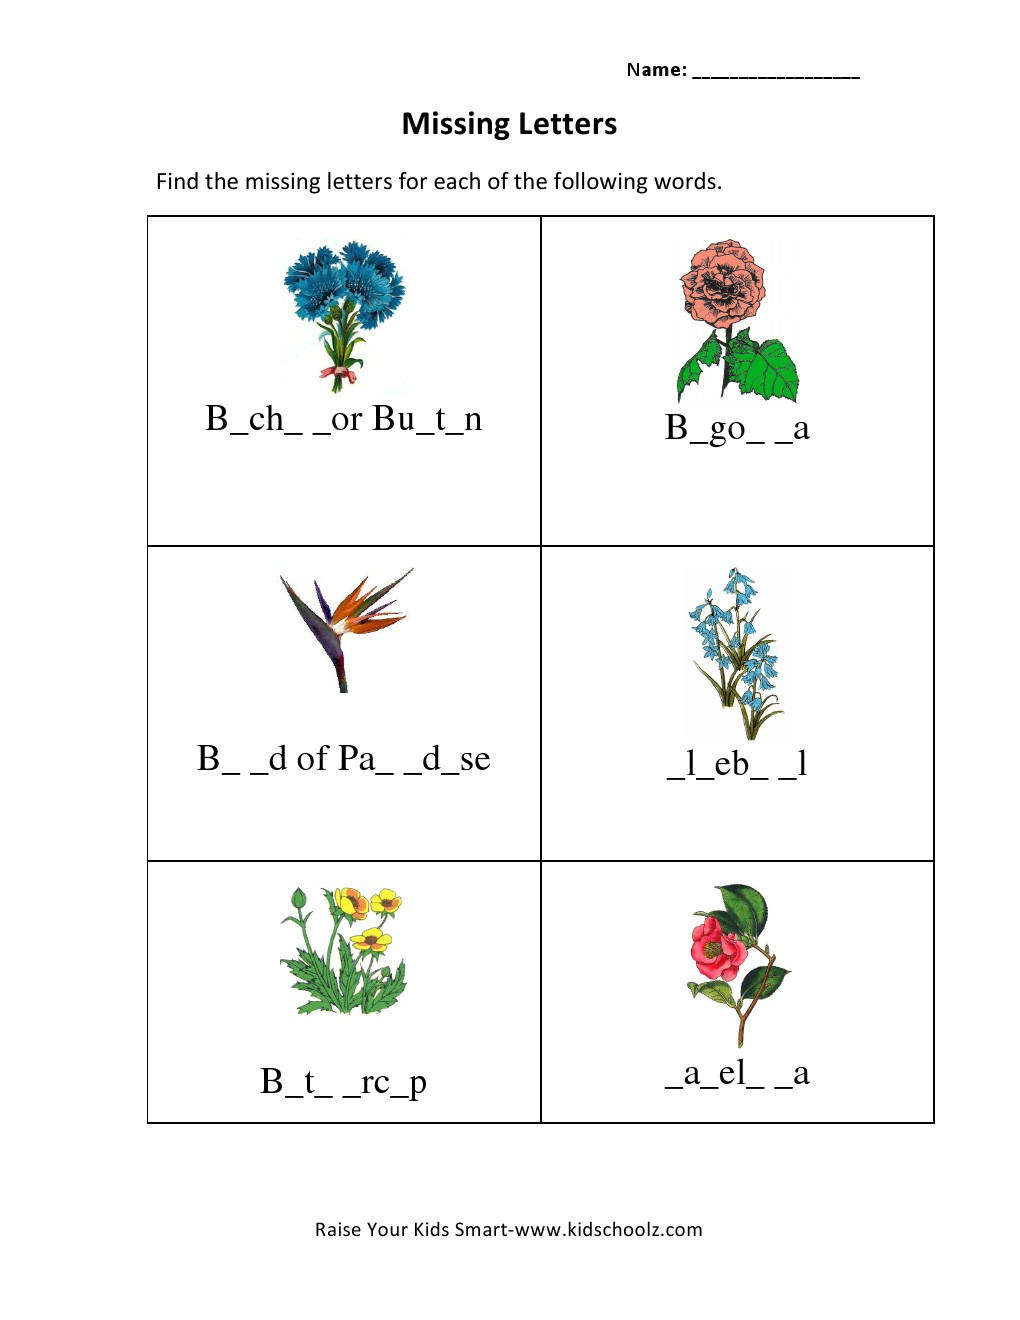 Grade 3 Missing Letters Worksheet